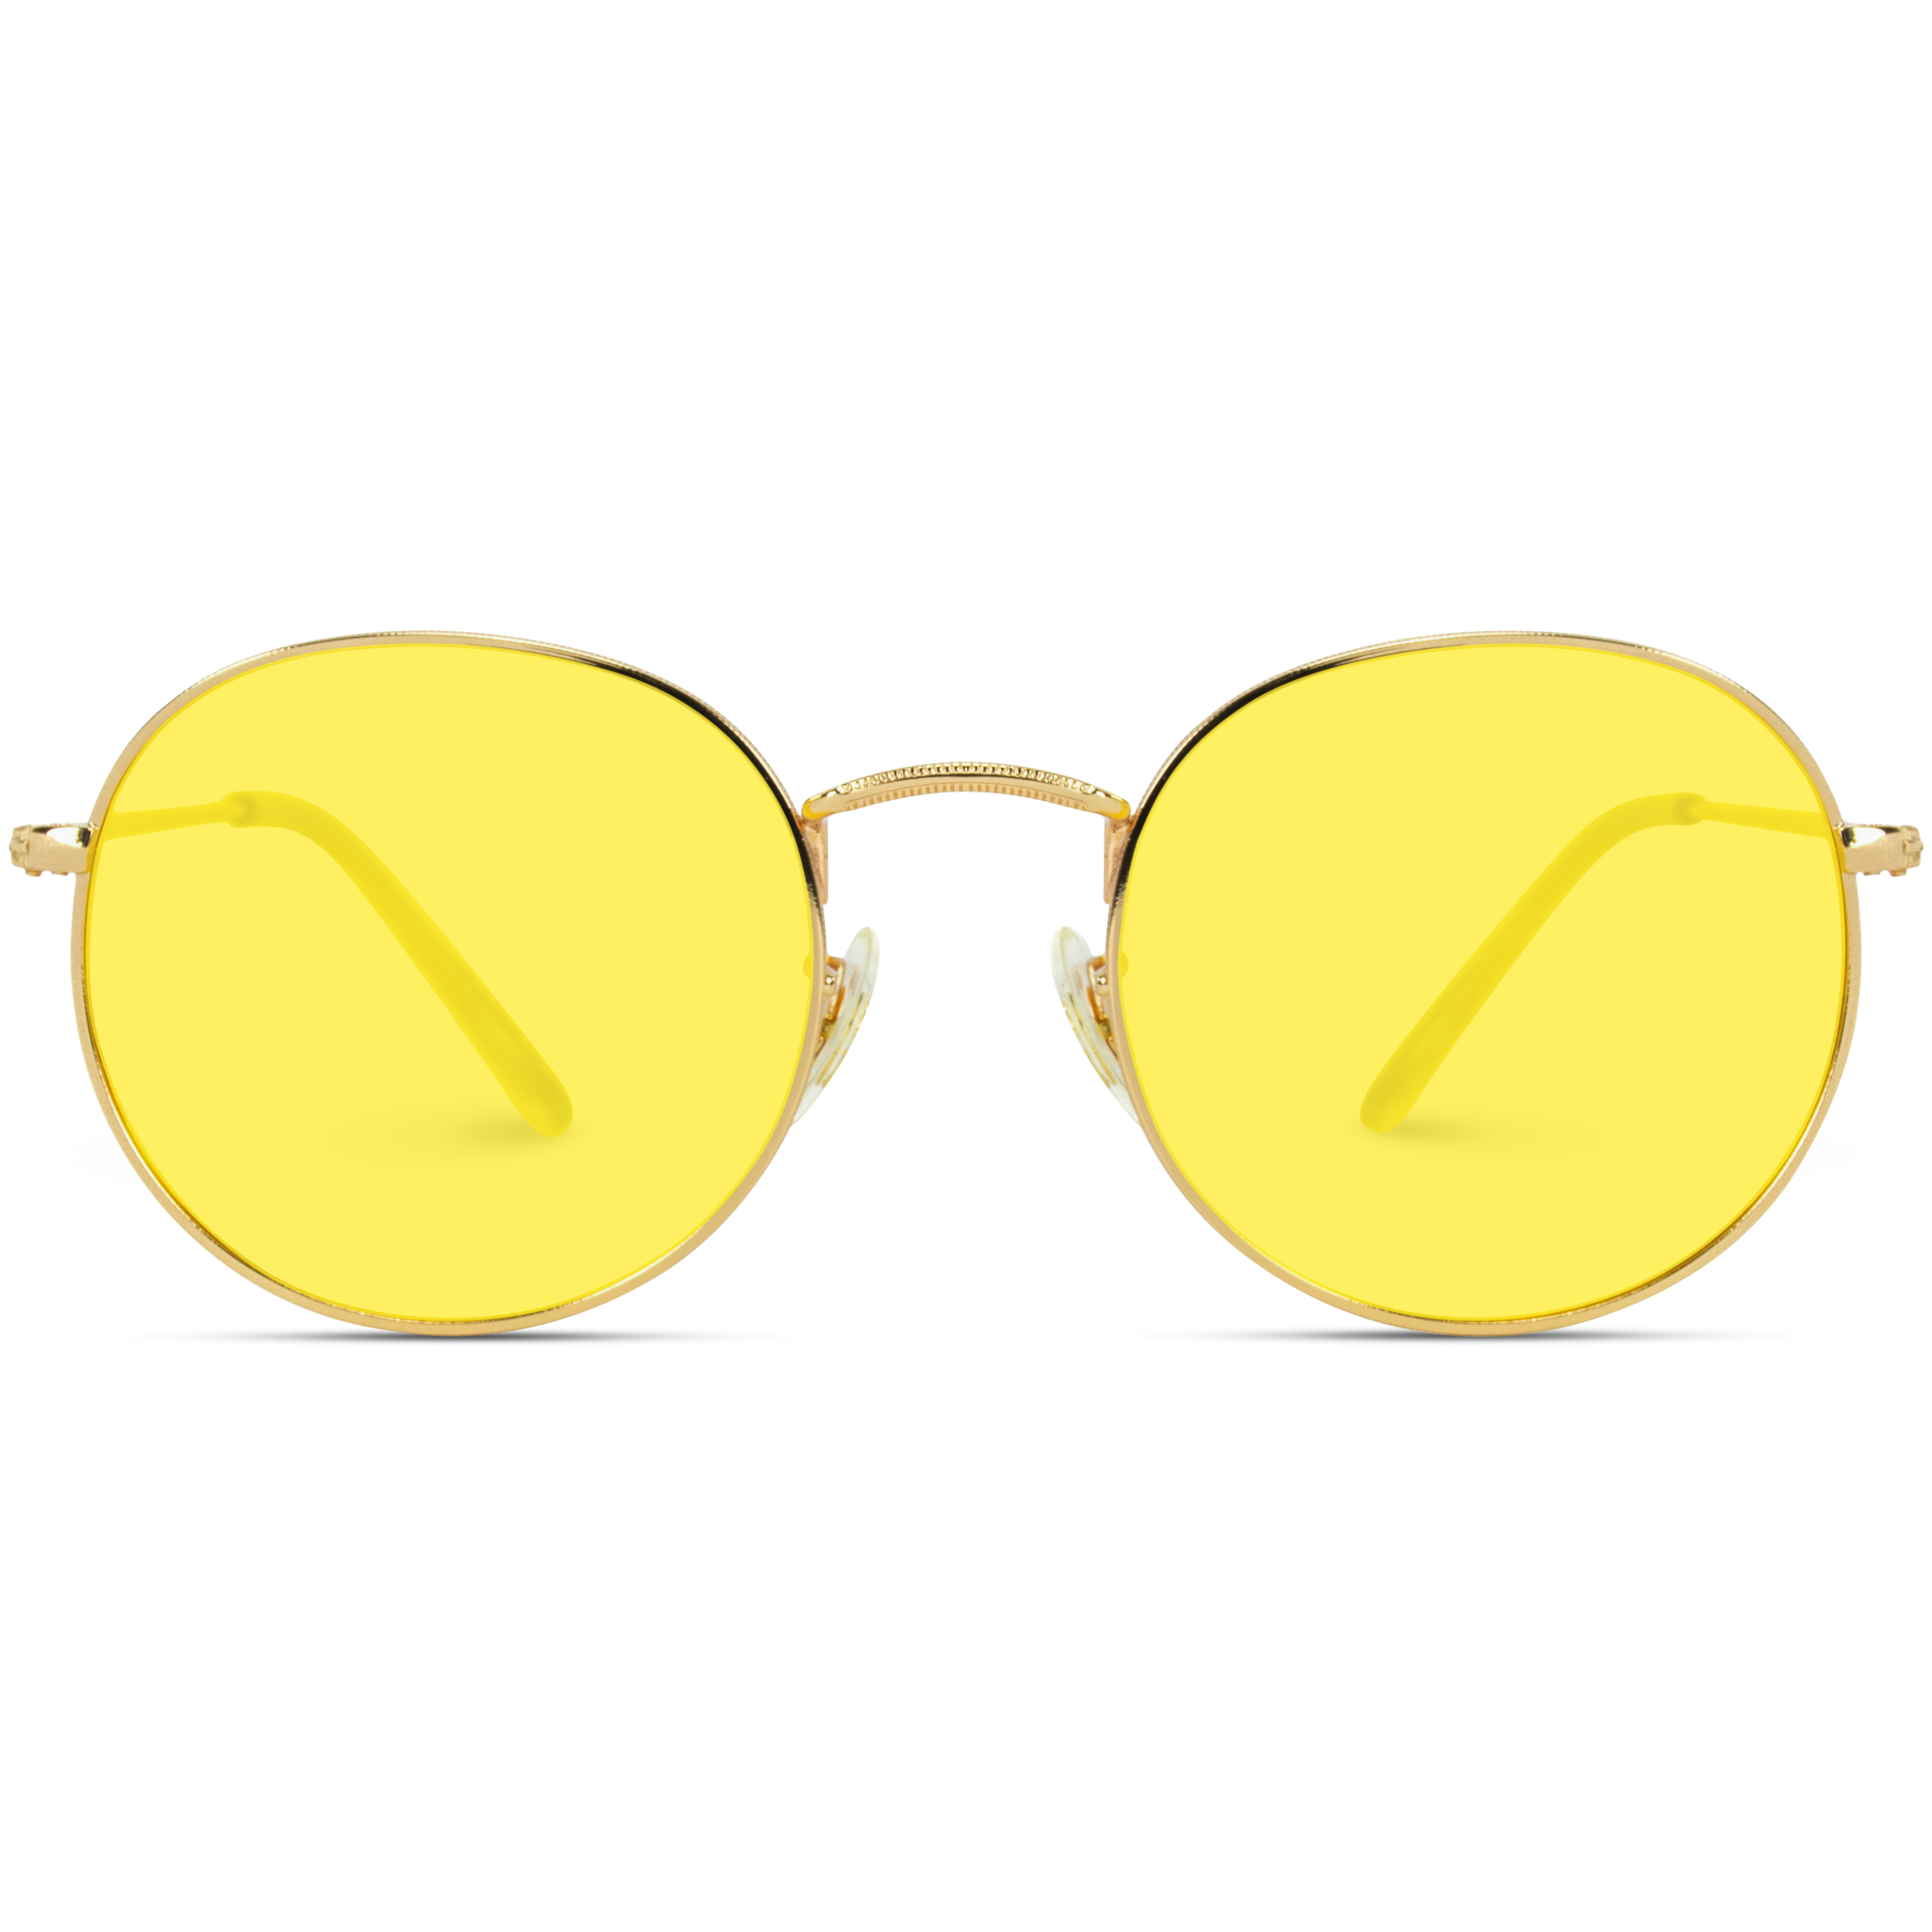 Ode Round Tinted Polarized Lens Metal Frame Retro Sunglasses Retro Sunglasses Tinted Sunglasses Yellow Tinted Sunglasses